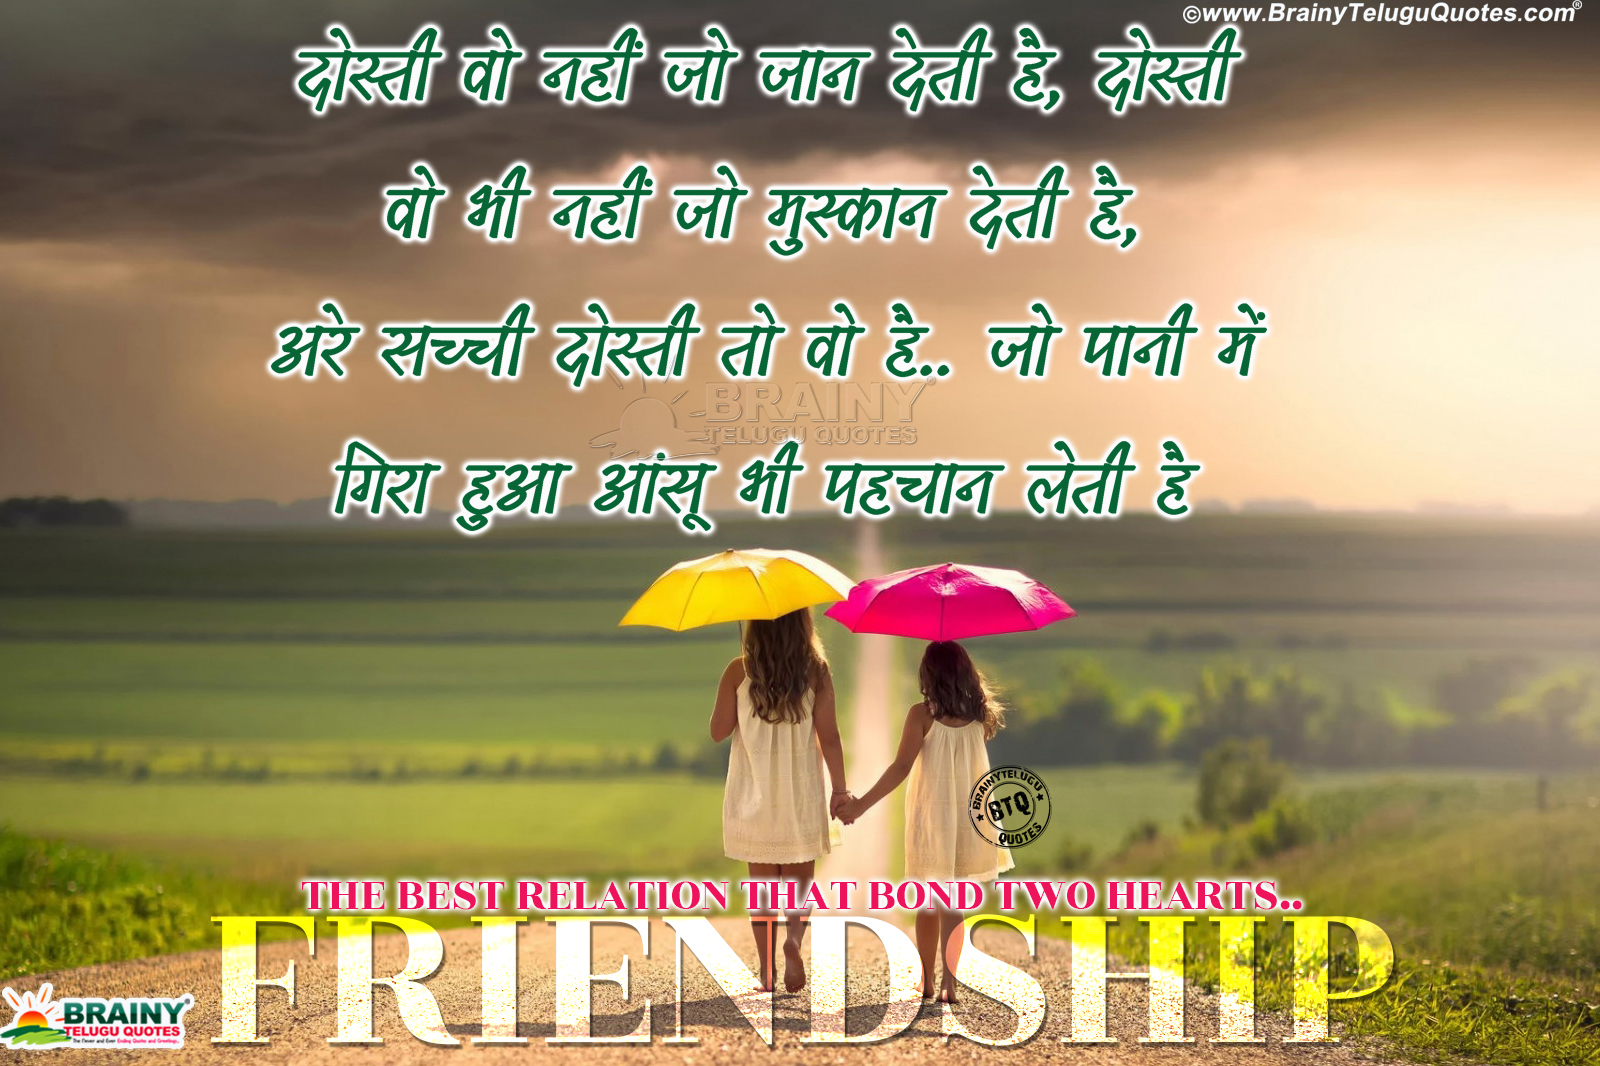 Stunning Best Wallpaper Friendship Message With Quote Wallpapers